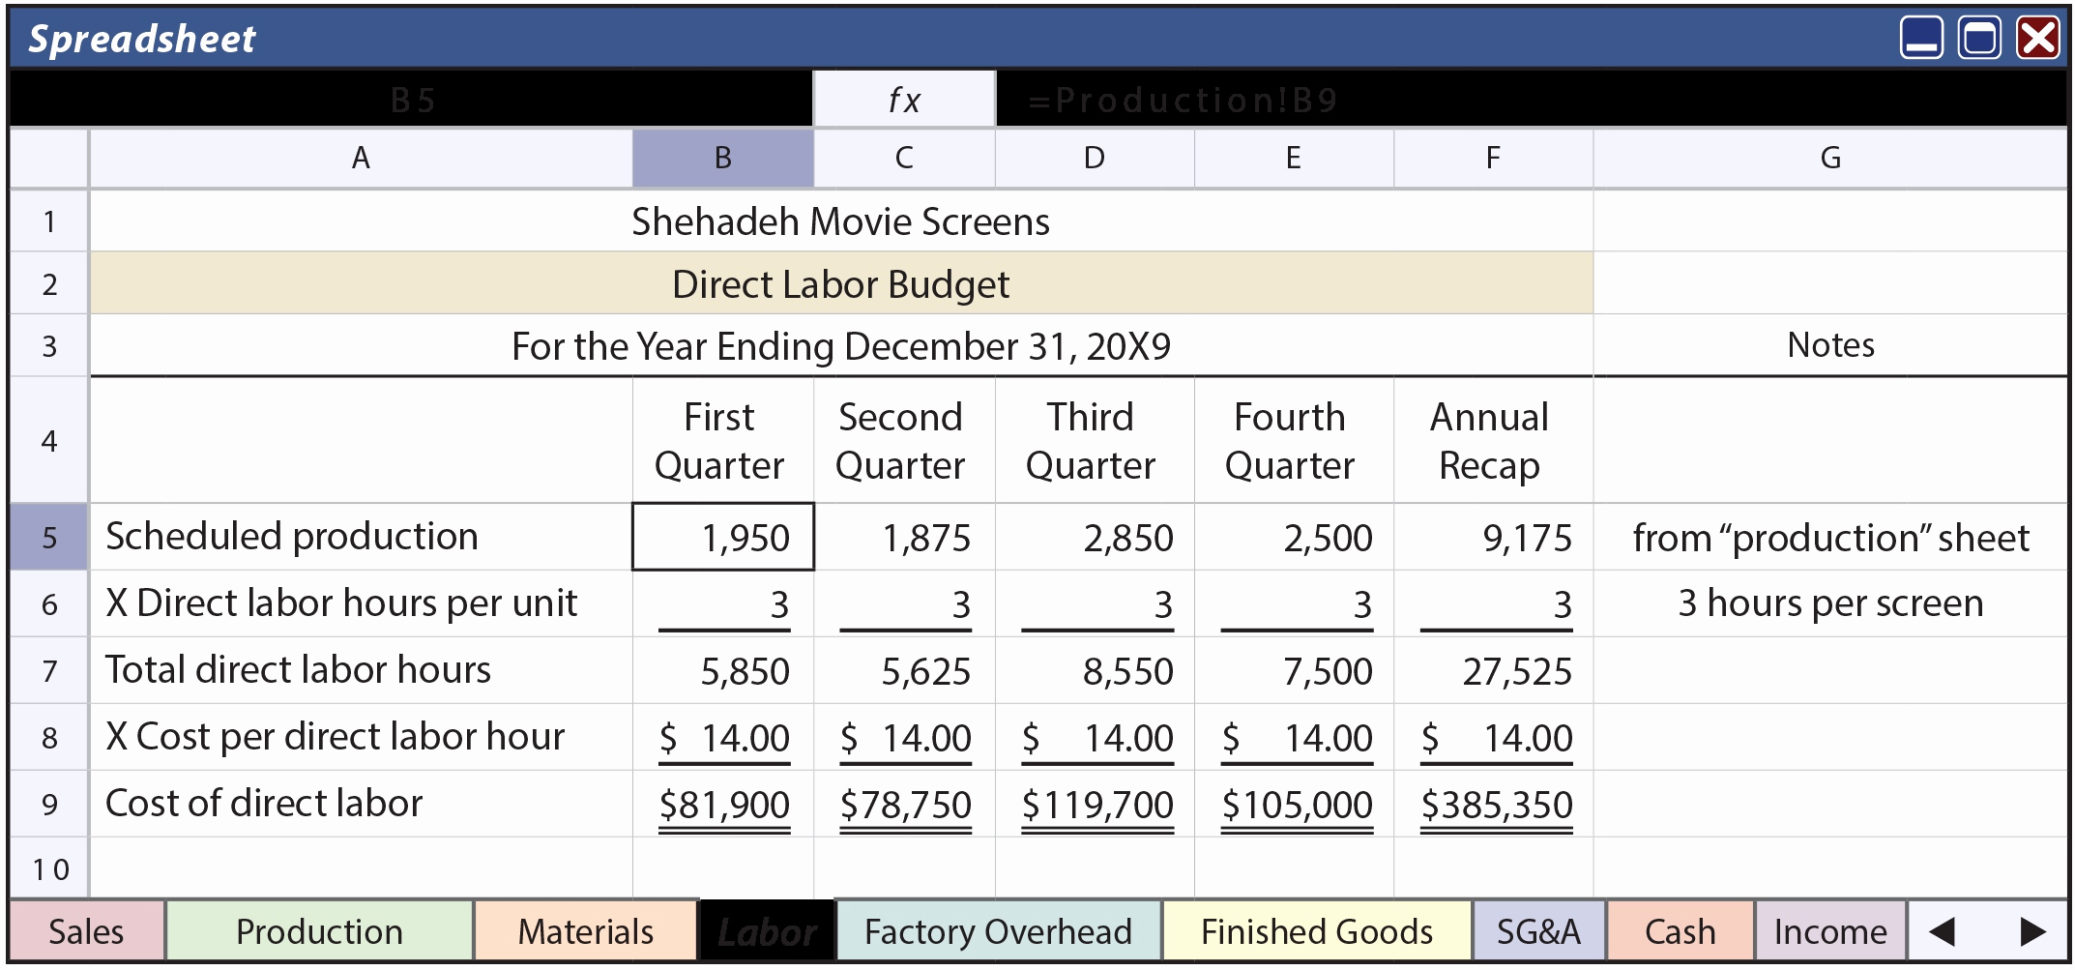 application of electronic spreadsheet in generating accounting information application of electronic spreadsheet in accounting application areas of electronic spreadsheet uses of electronic spreadsheet packages uses of electronic spreadsheet in business use of electronic spreadsheets in developing budgets application of electronic spreadsheet  Application Of Electronic Spreadsheet Regarding Beautiful Common Business Uses For Electronic Spreadsheets Example Application Of Electronic Spreadsheet Printable Spreadshee